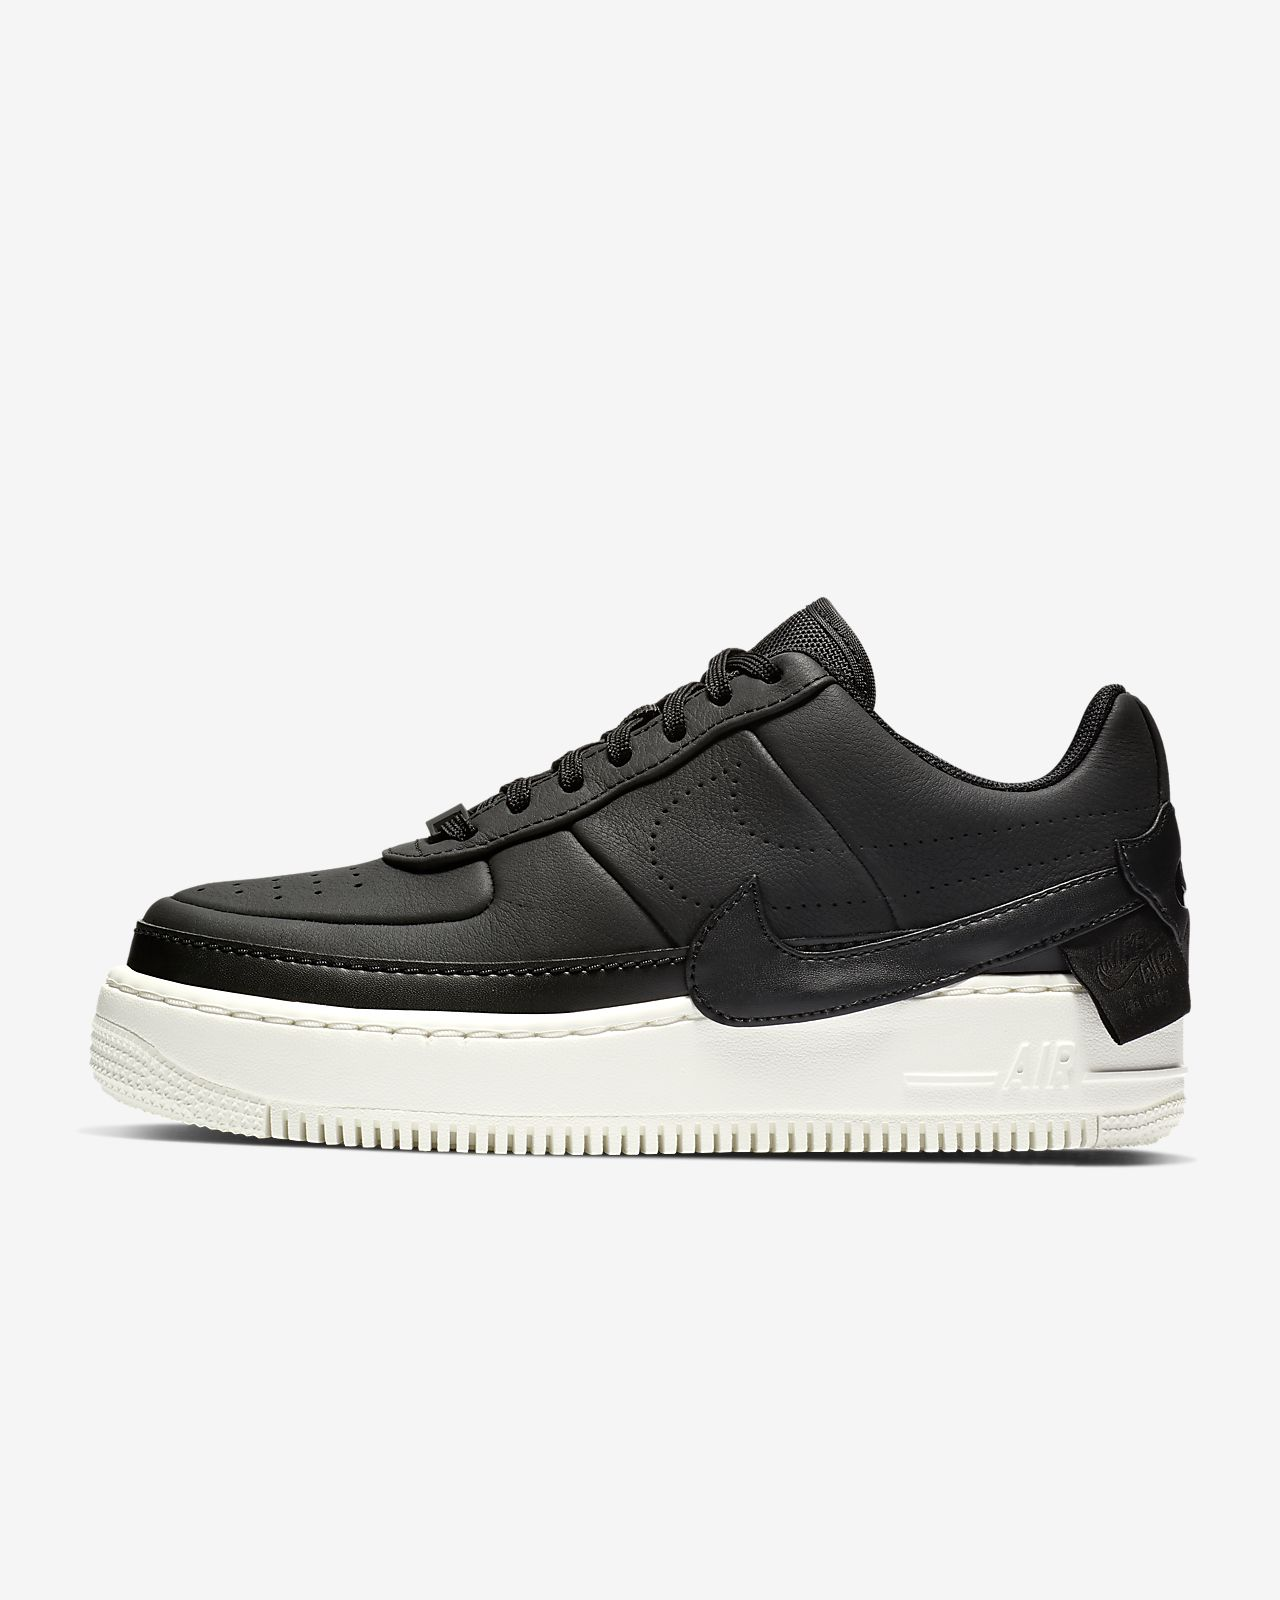 Nike Air Force 1 Jester XX Premium Women's Shoe